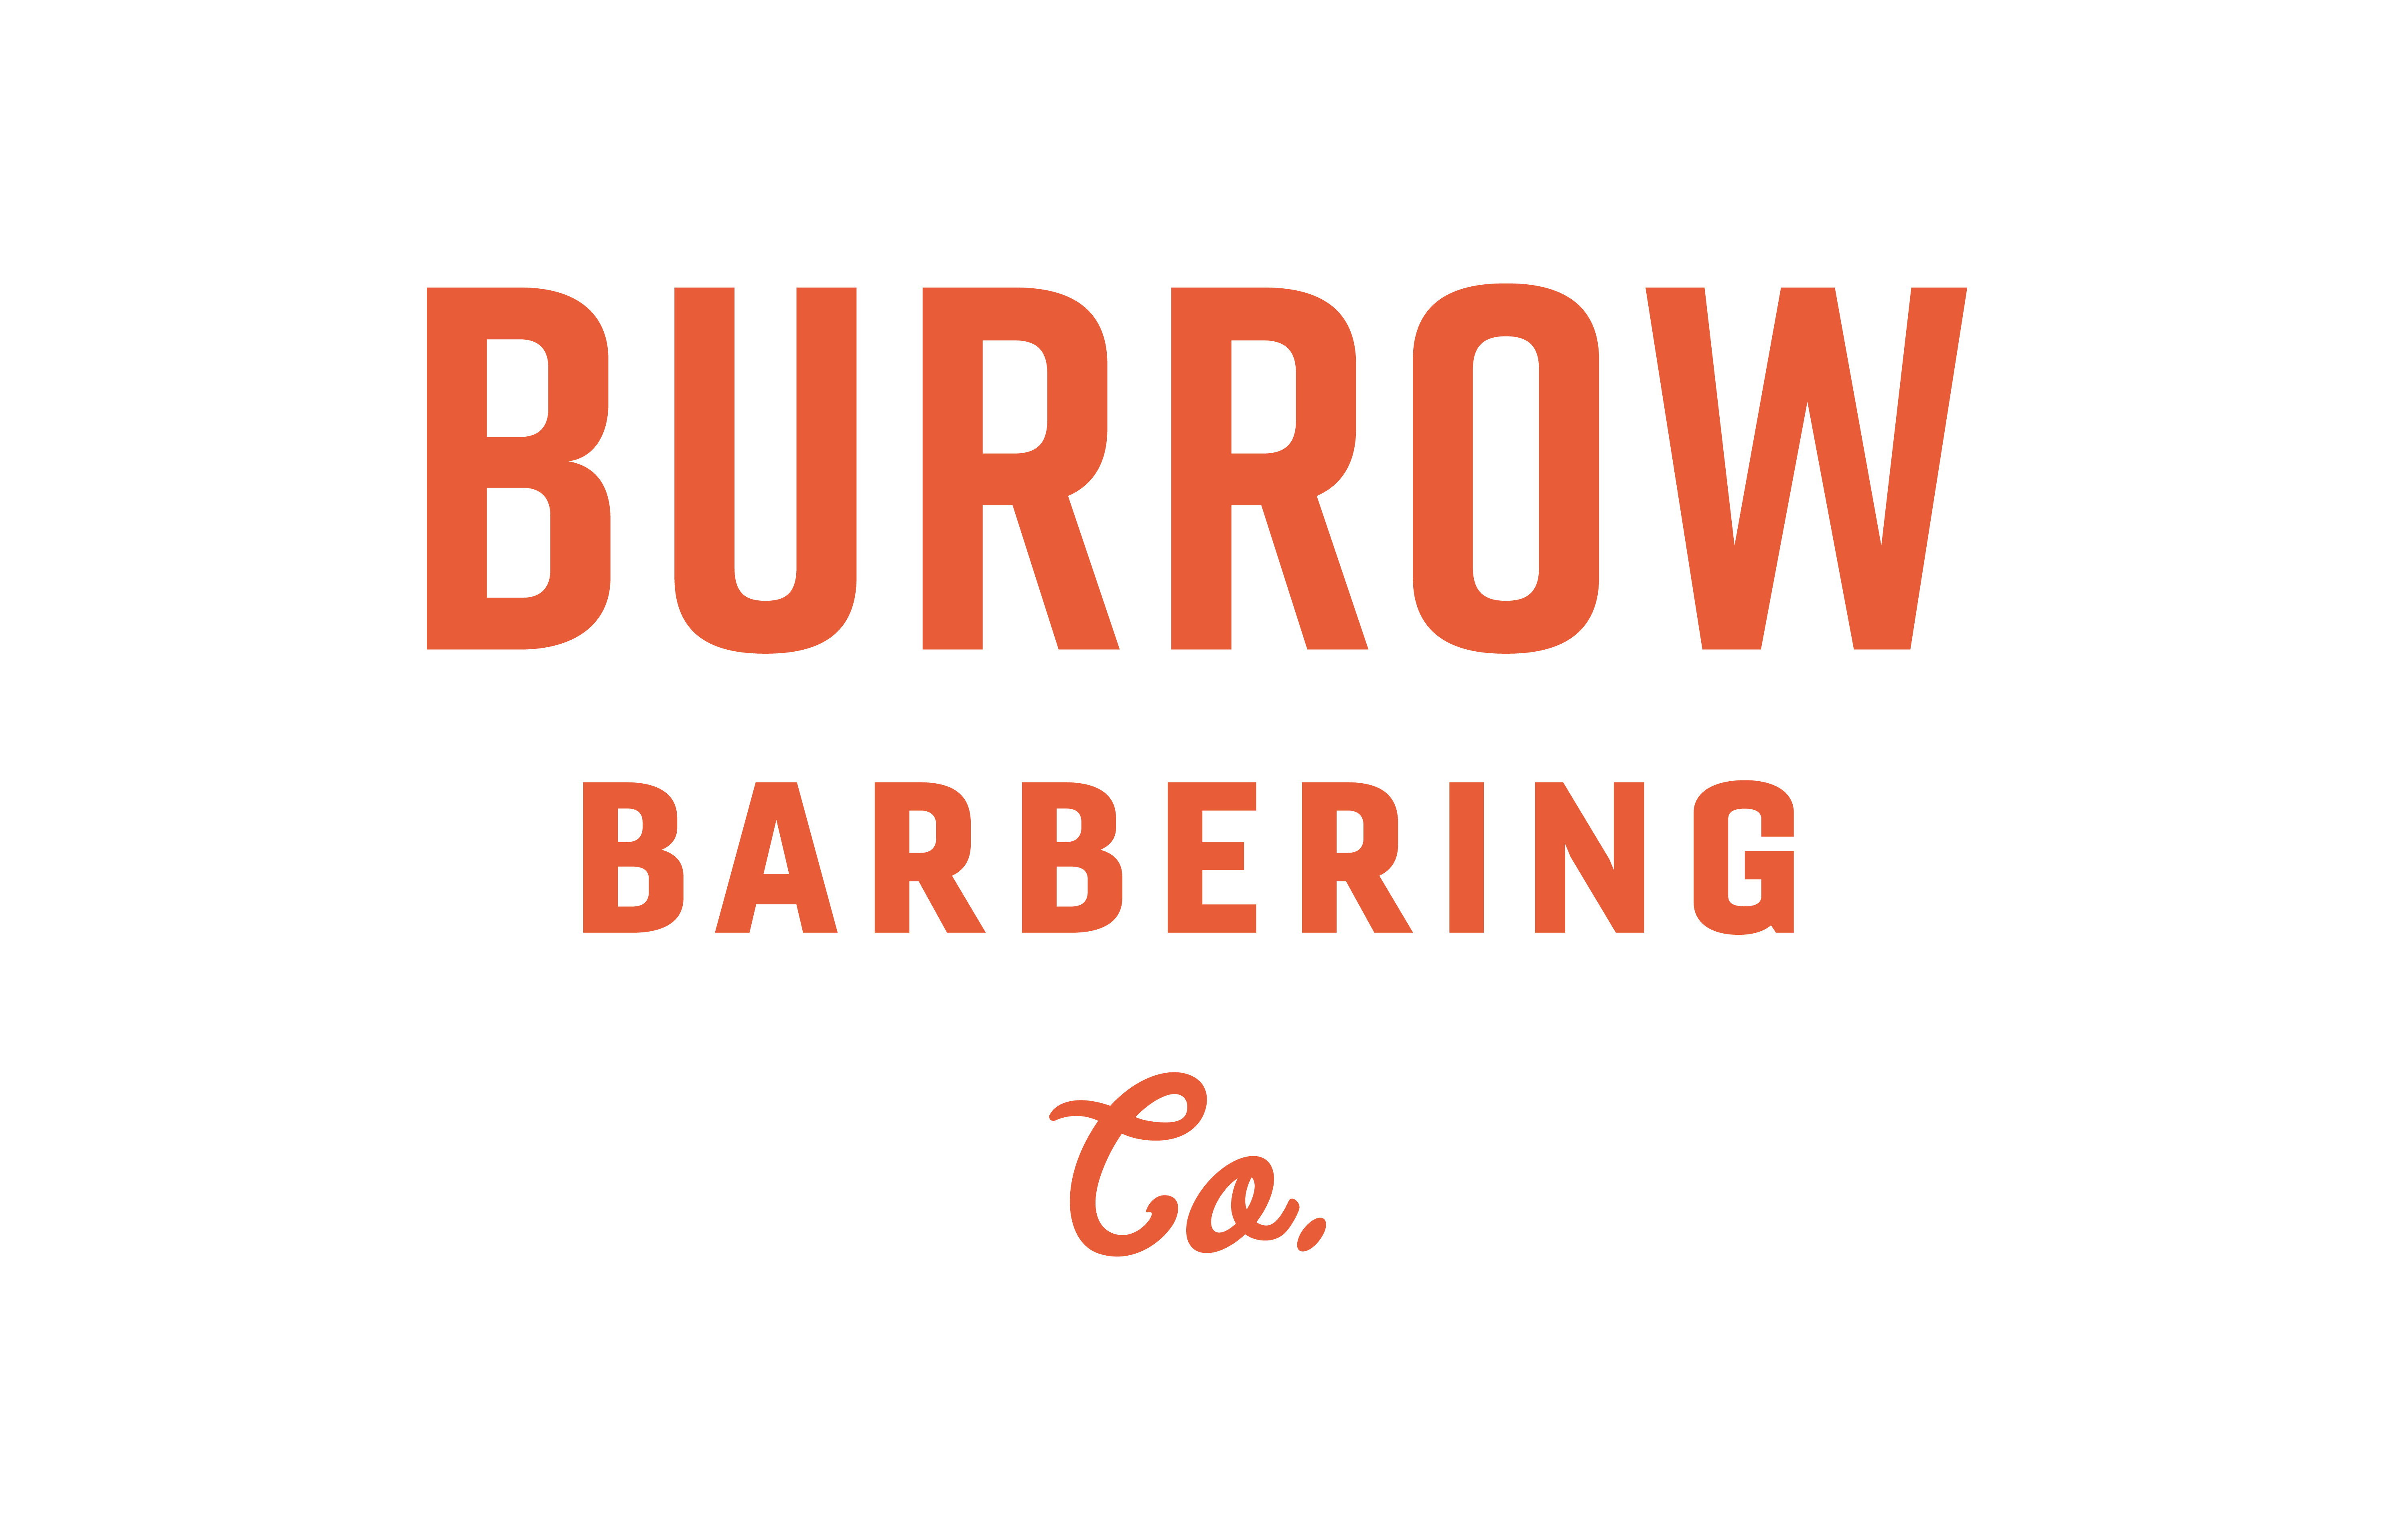 burrow-barbering-co-misuse-a